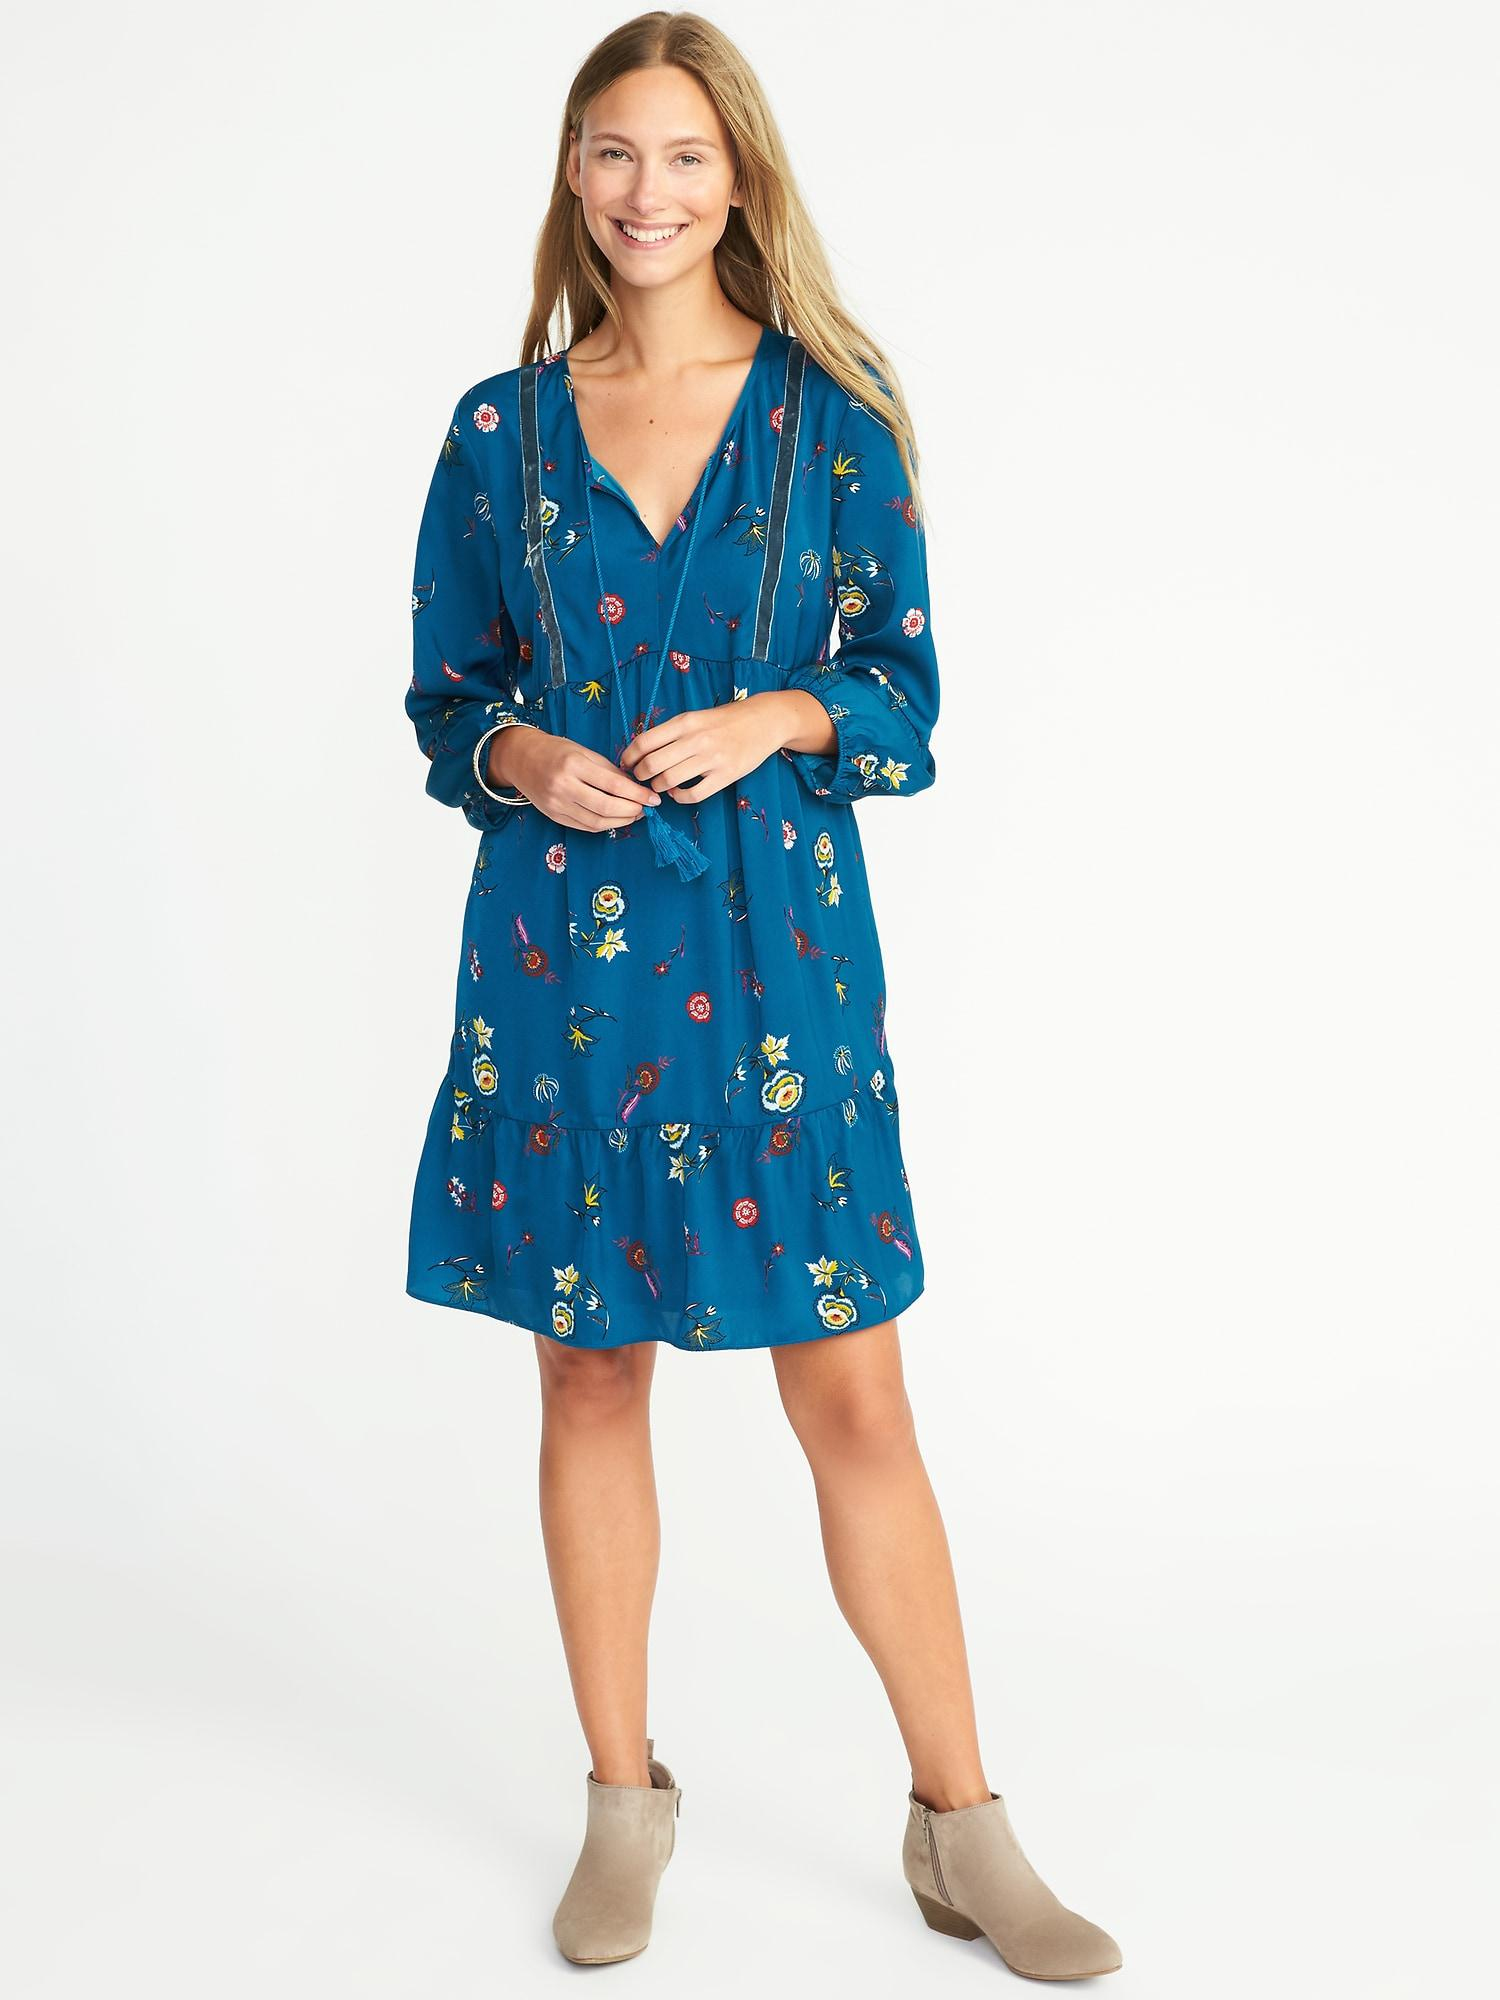 994ca58c6276 Gallery. Previously sold at: Old Navy · Women's Navy Dresses Women's Swing  Dresses